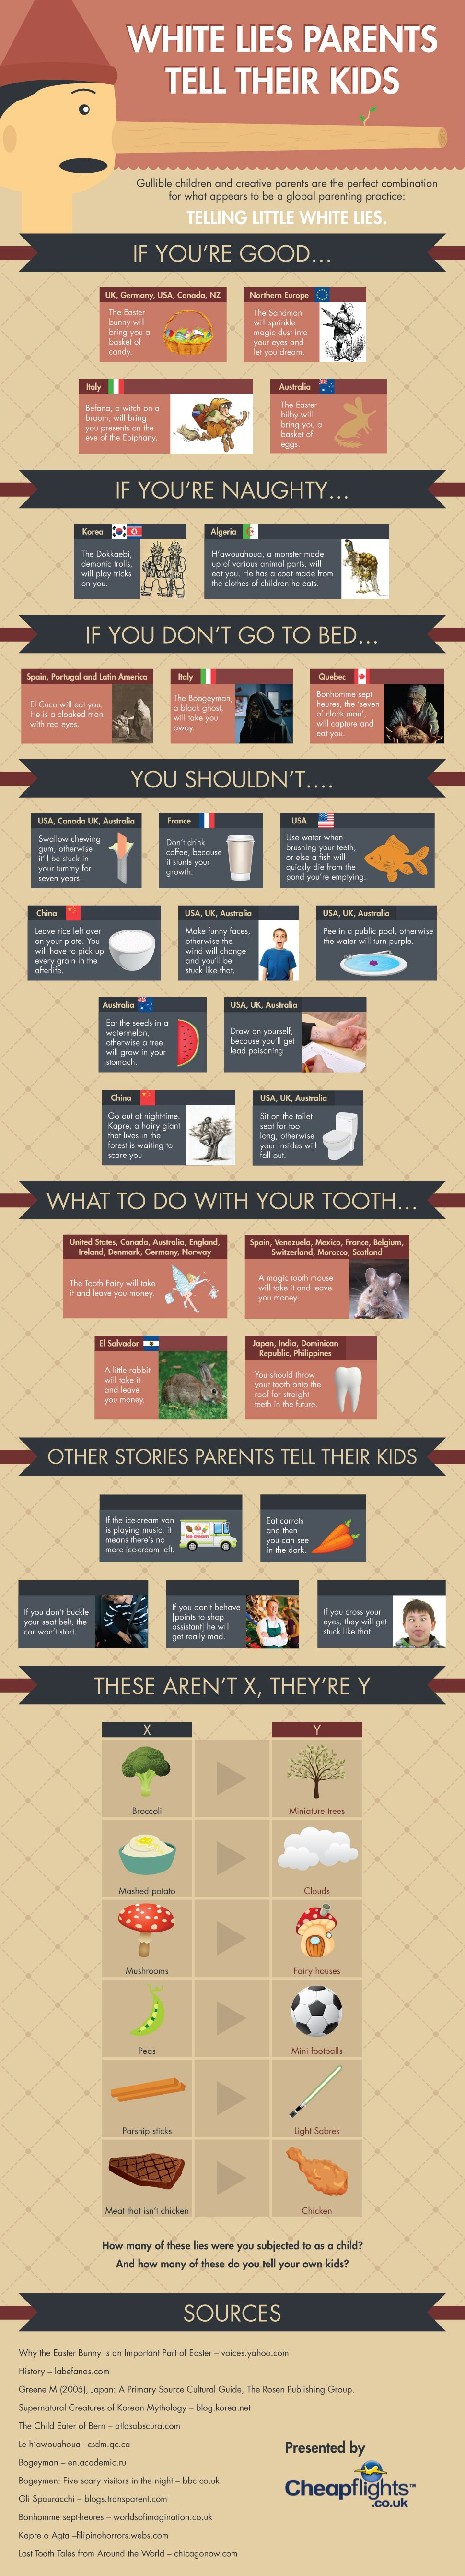 Little white lies that parents tell their kids